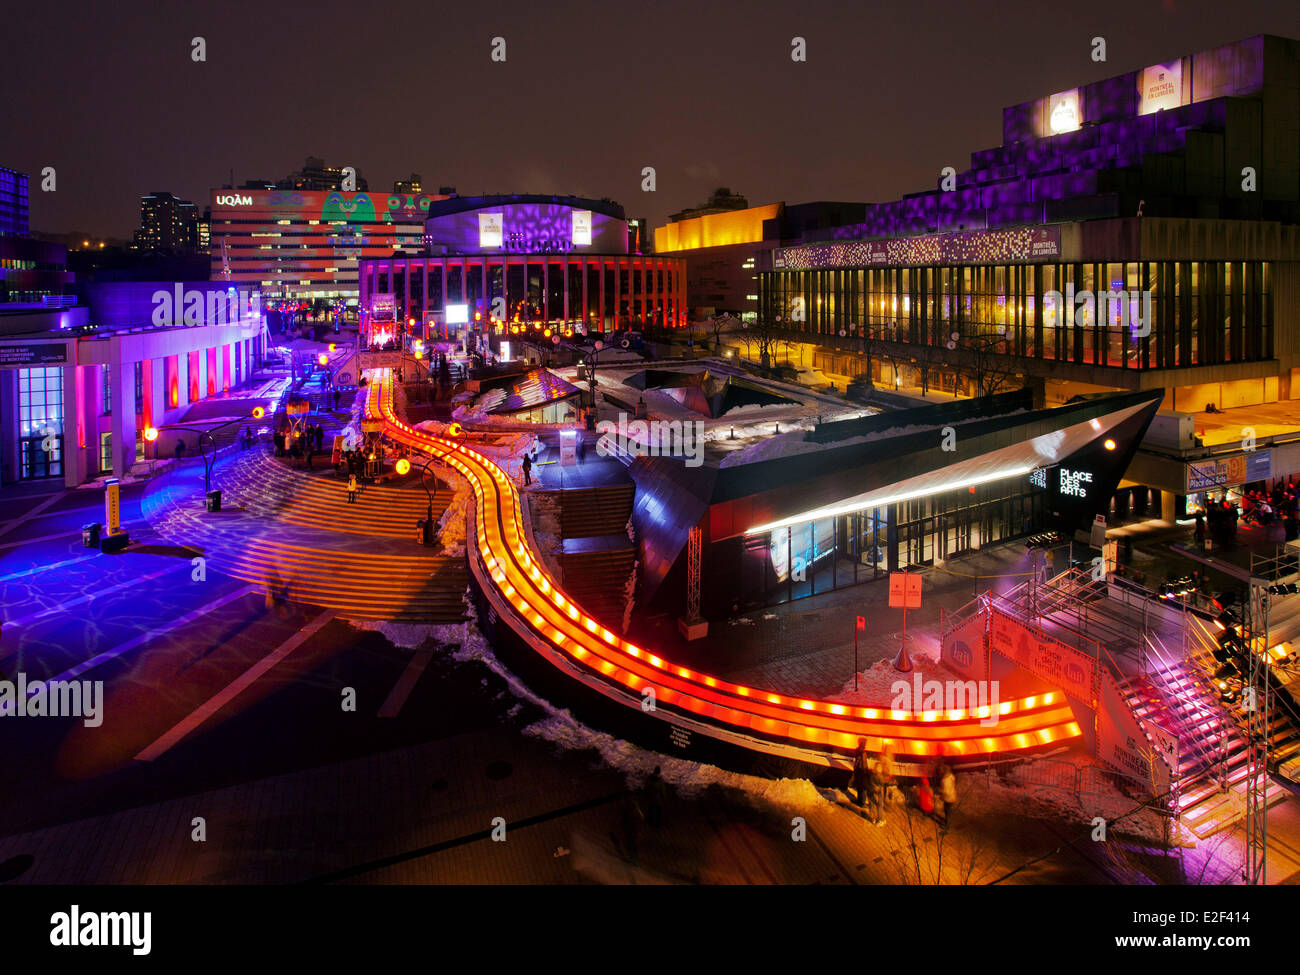 Canada, Quebec province, Montreal, Montreal en Lumiere festival, giant slide - Stock Image